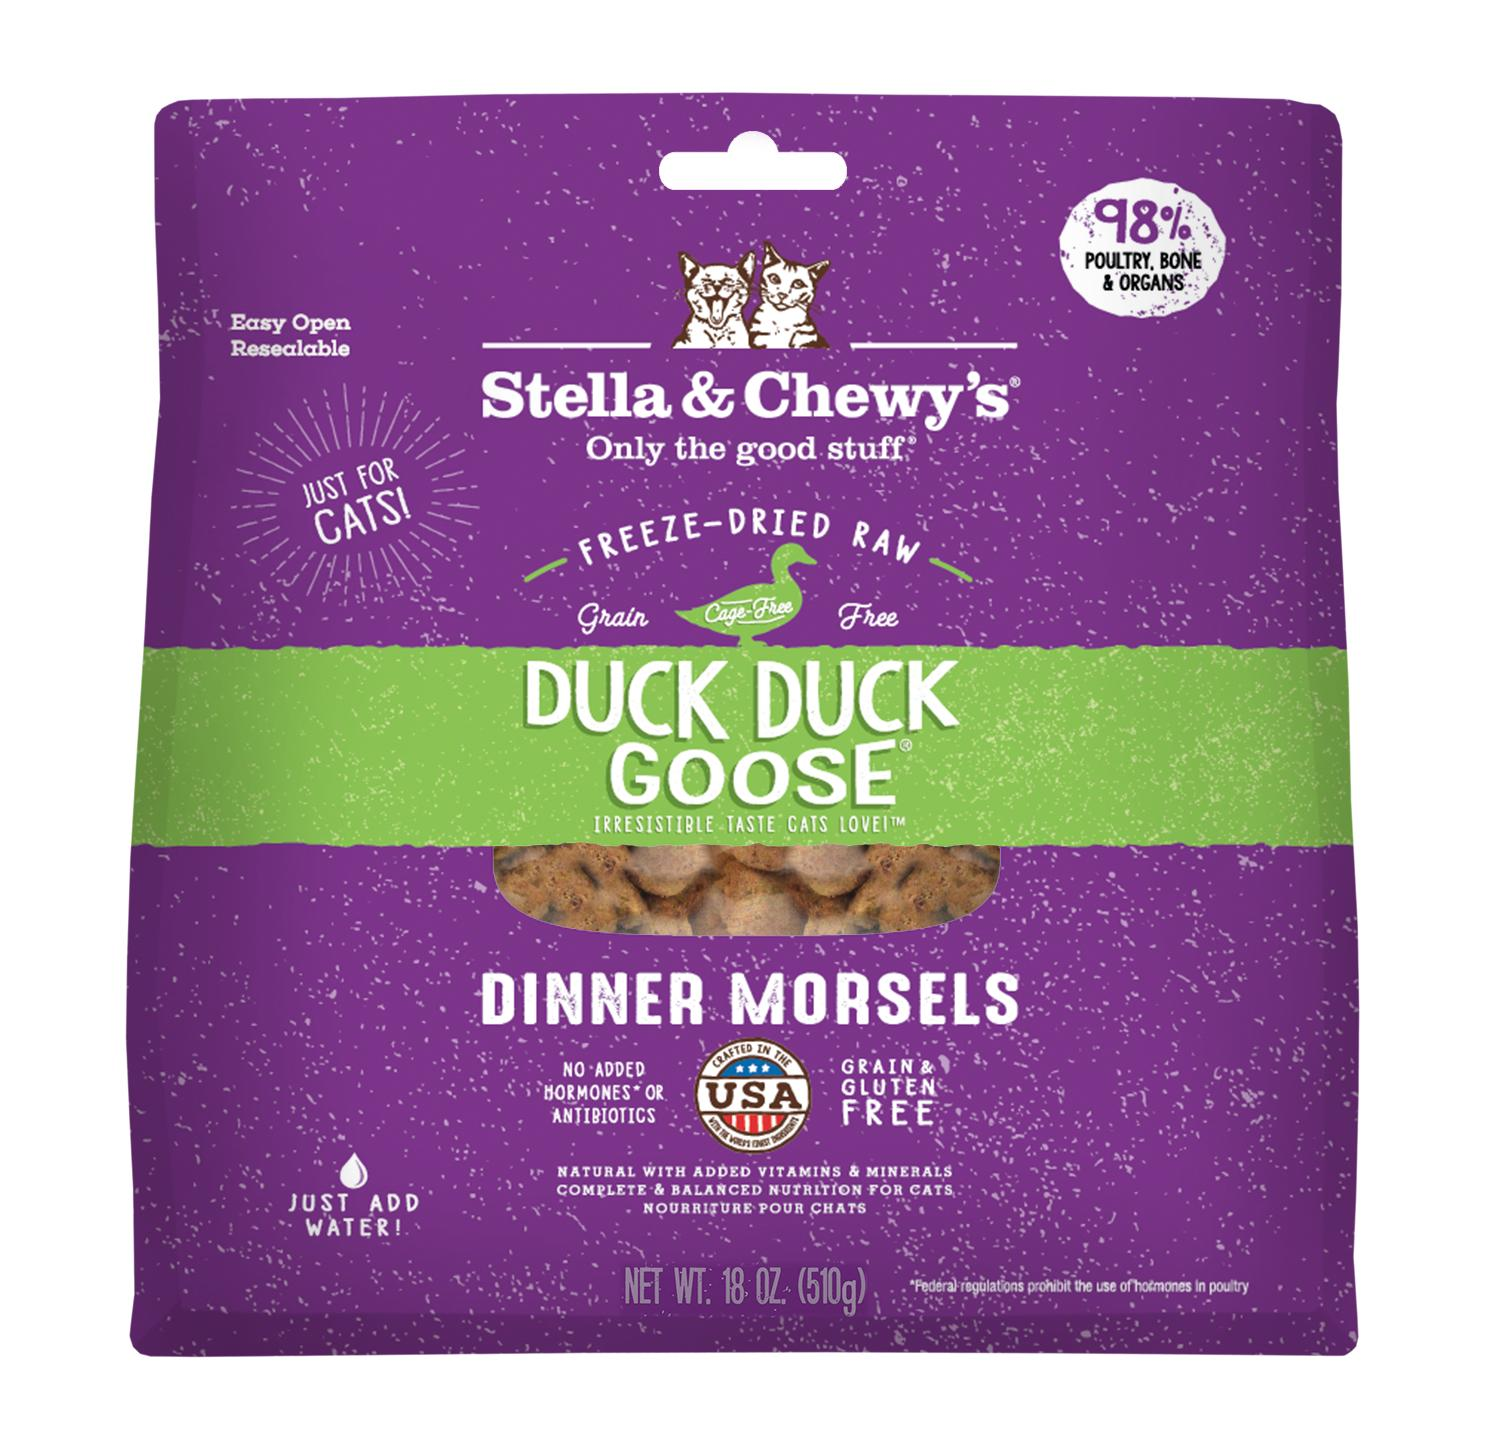 Stella & Chewy's Duck Duck Goose Dinner Morsels Grain-Free Freeze-Dried Cat Food, 18-oz bag